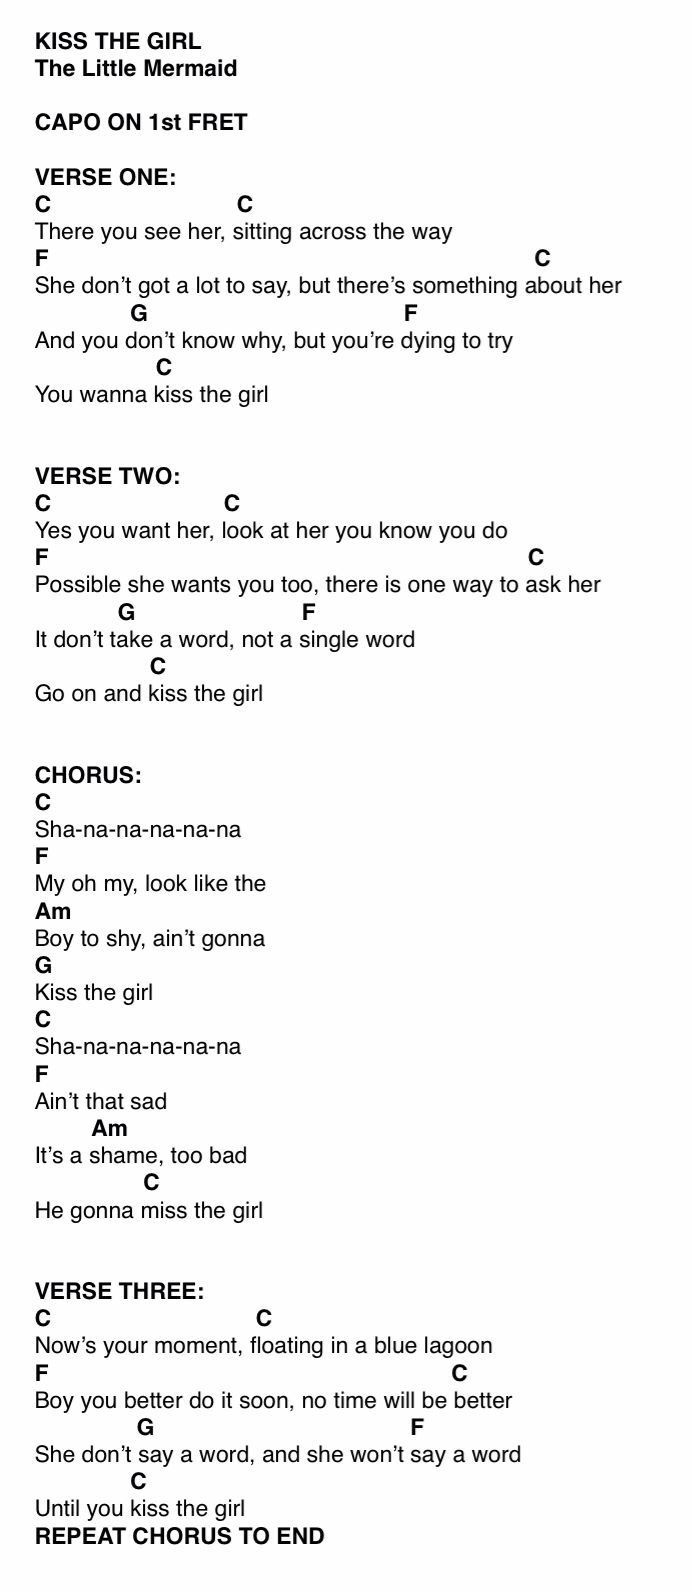 Kiss the girl the little mermaid music classroom pinterest kiss the girl the little mermaid ukulele tabsguitar chord hexwebz Choice Image